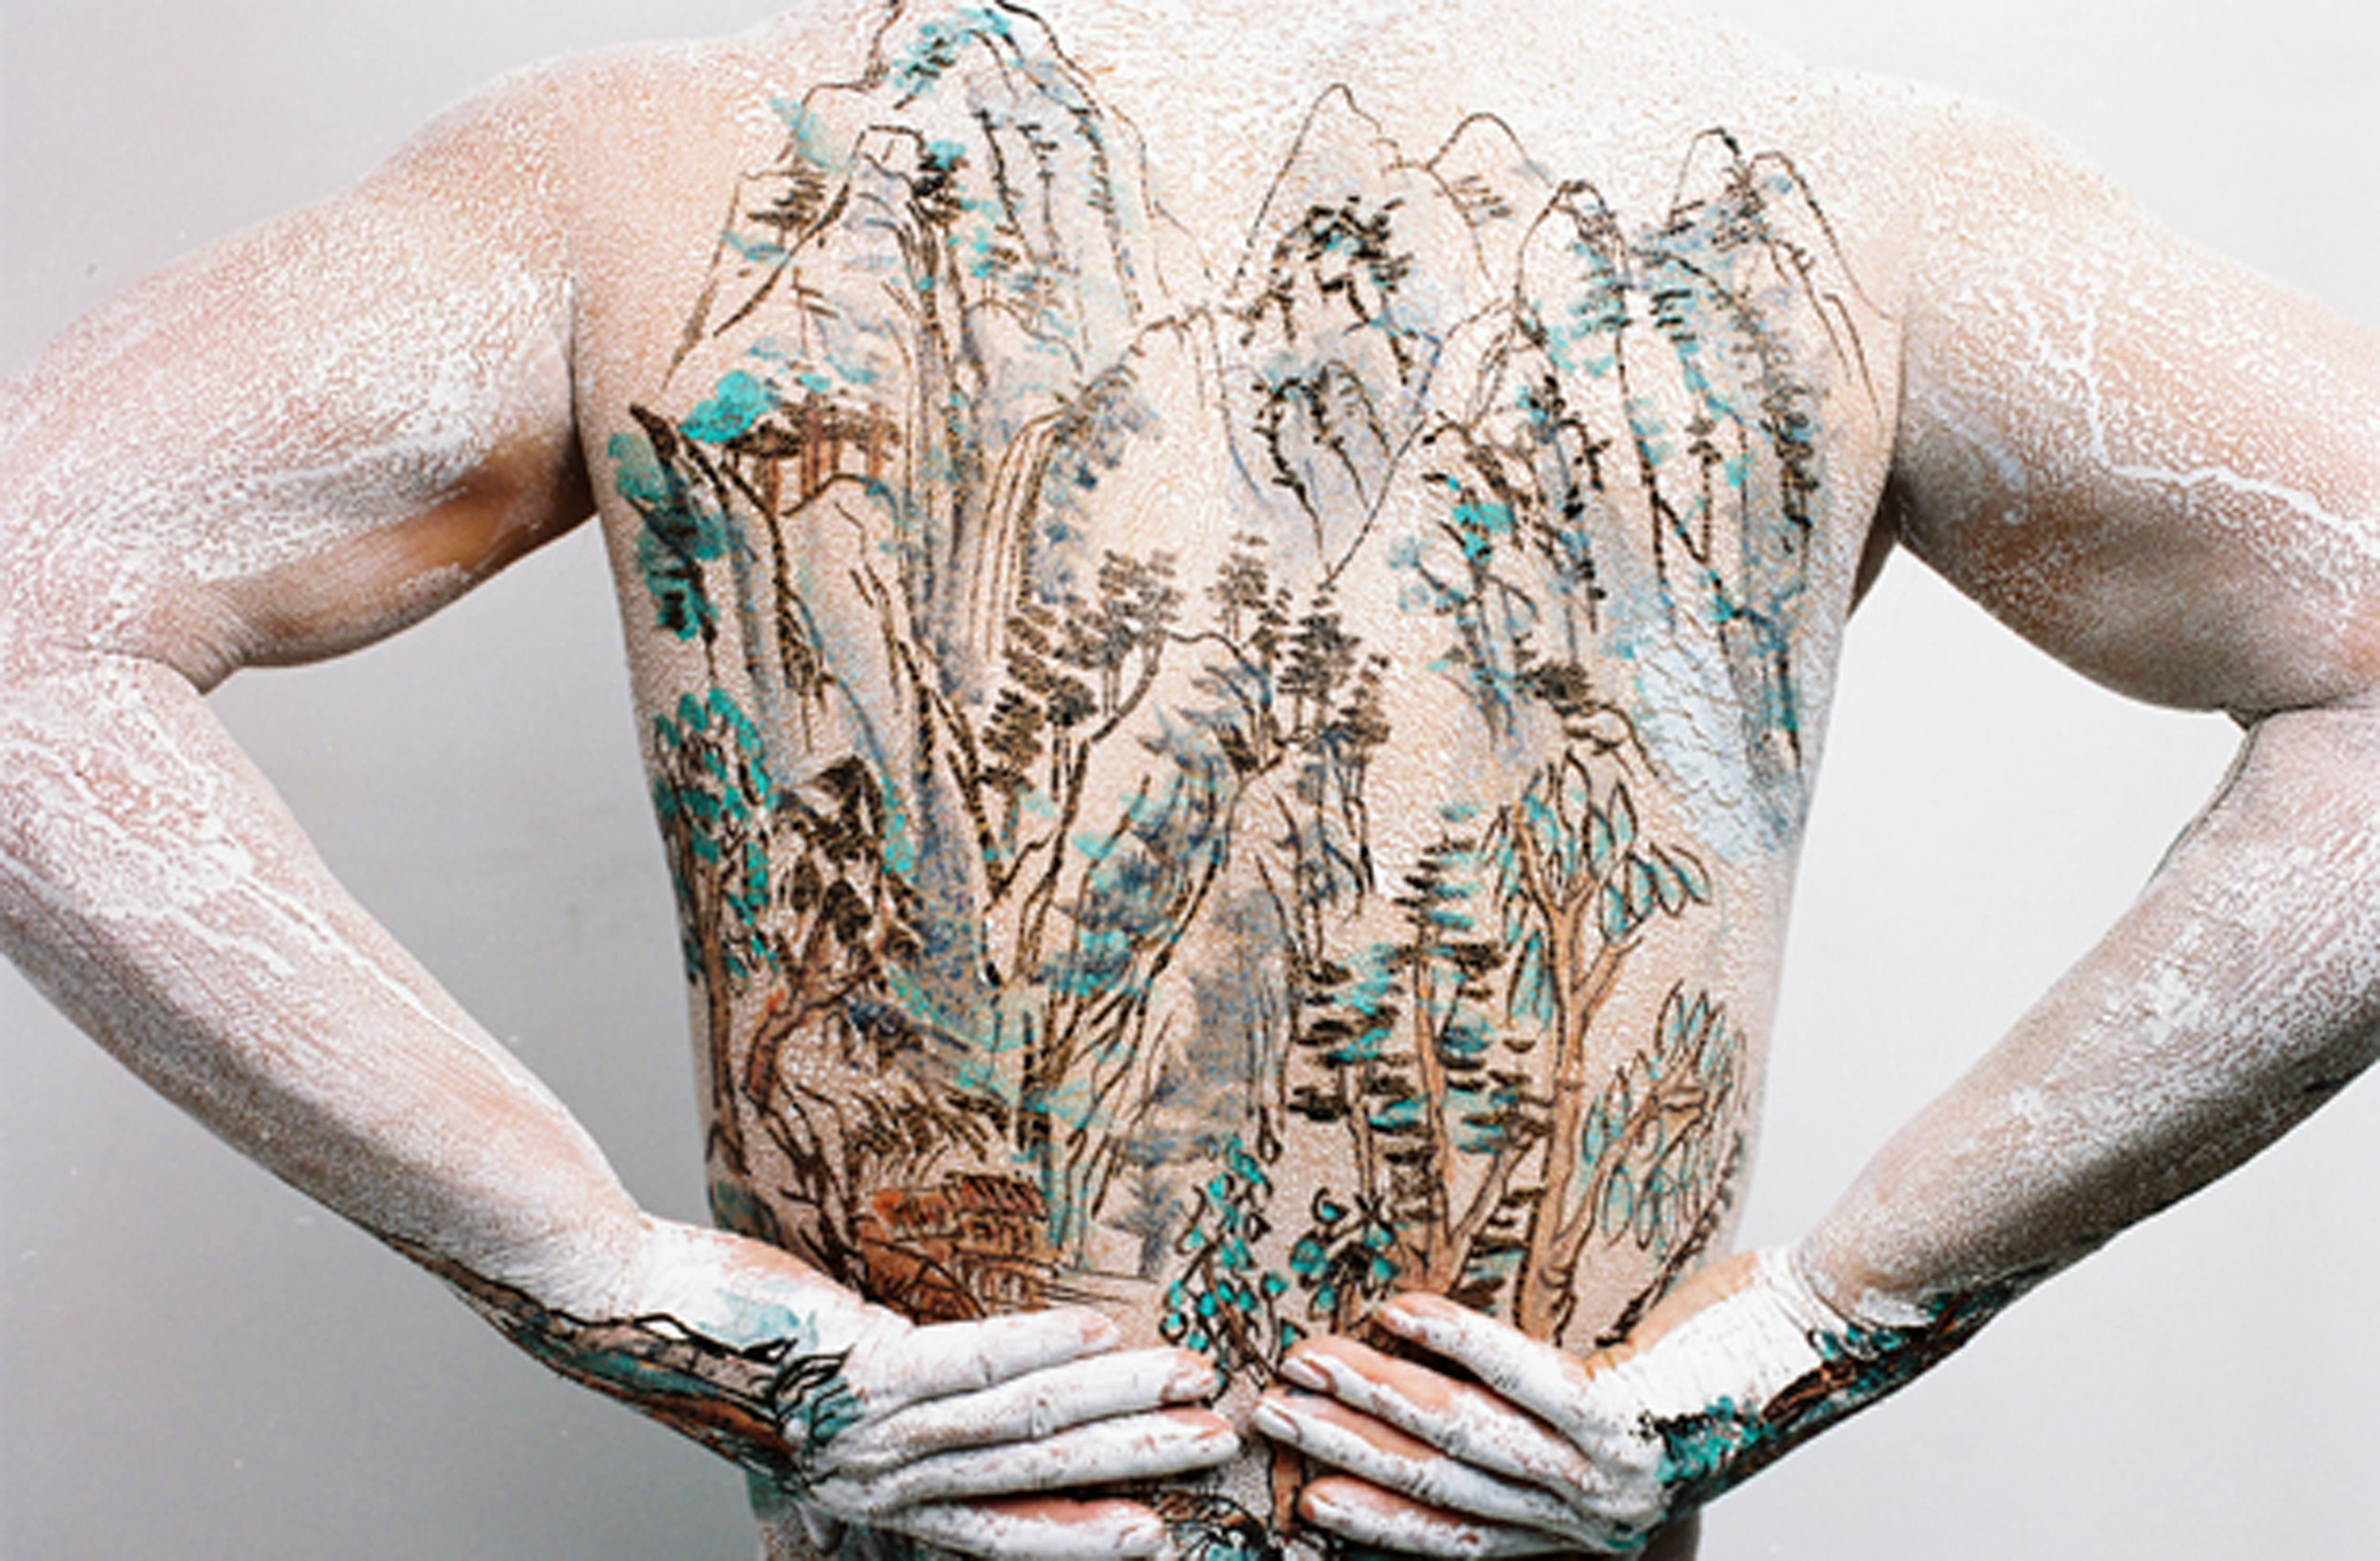 Chinese Shan-shui tattoo 5